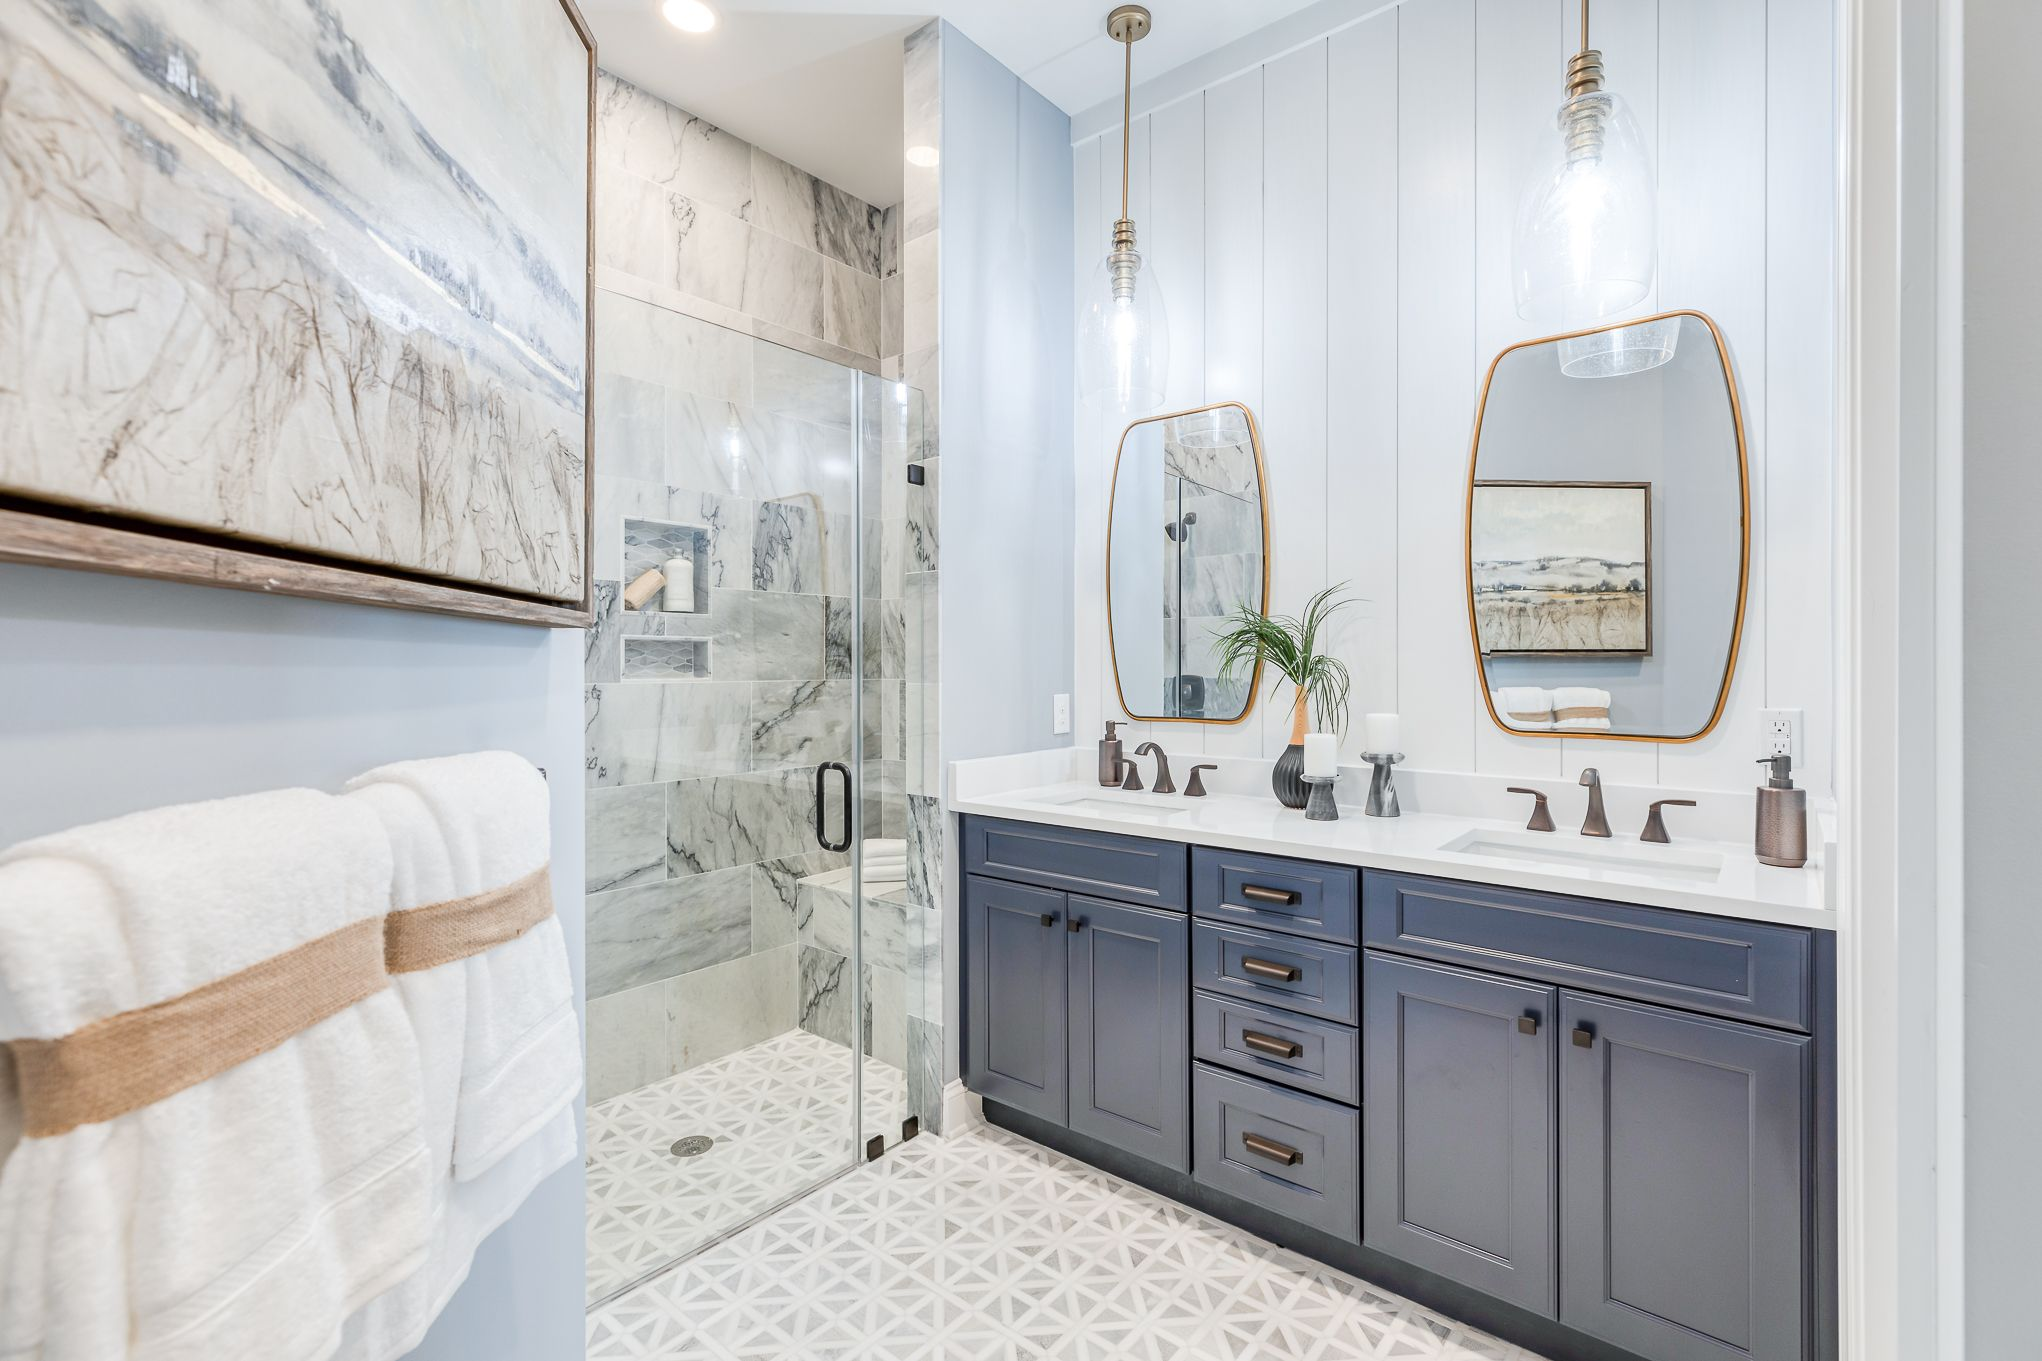 Bathroom featured in The Wexford By McKee Builders in Philadelphia, PA